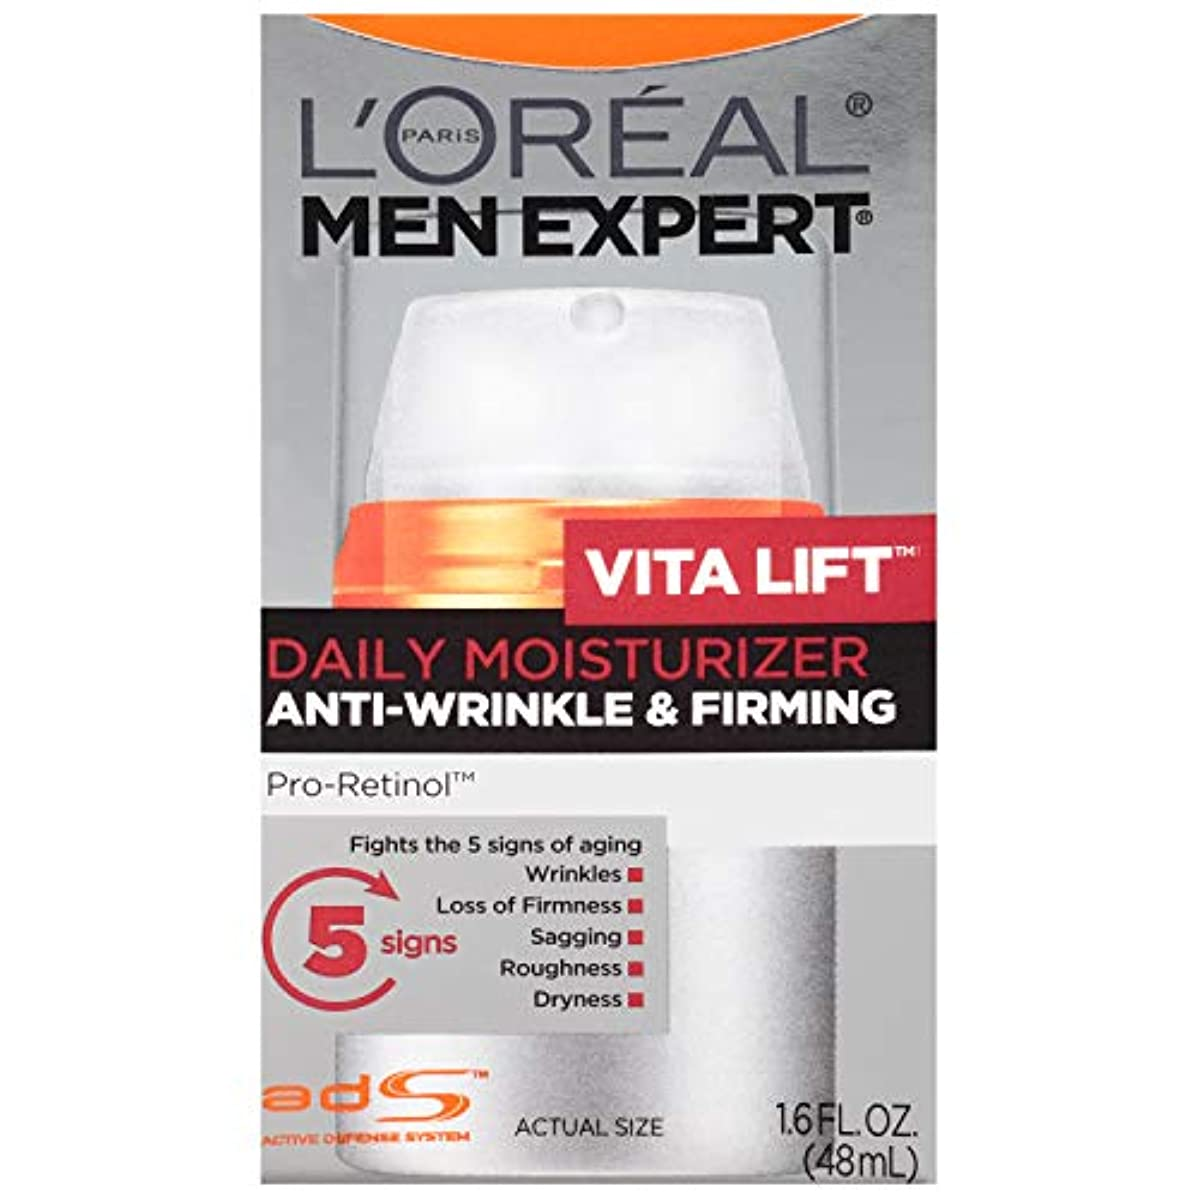 クリック簡略化する継承Men's Expert L'Oreal Paris Vita Lift Anti-Wrinkle & Firming Moisturizer, 1.6 Ounces